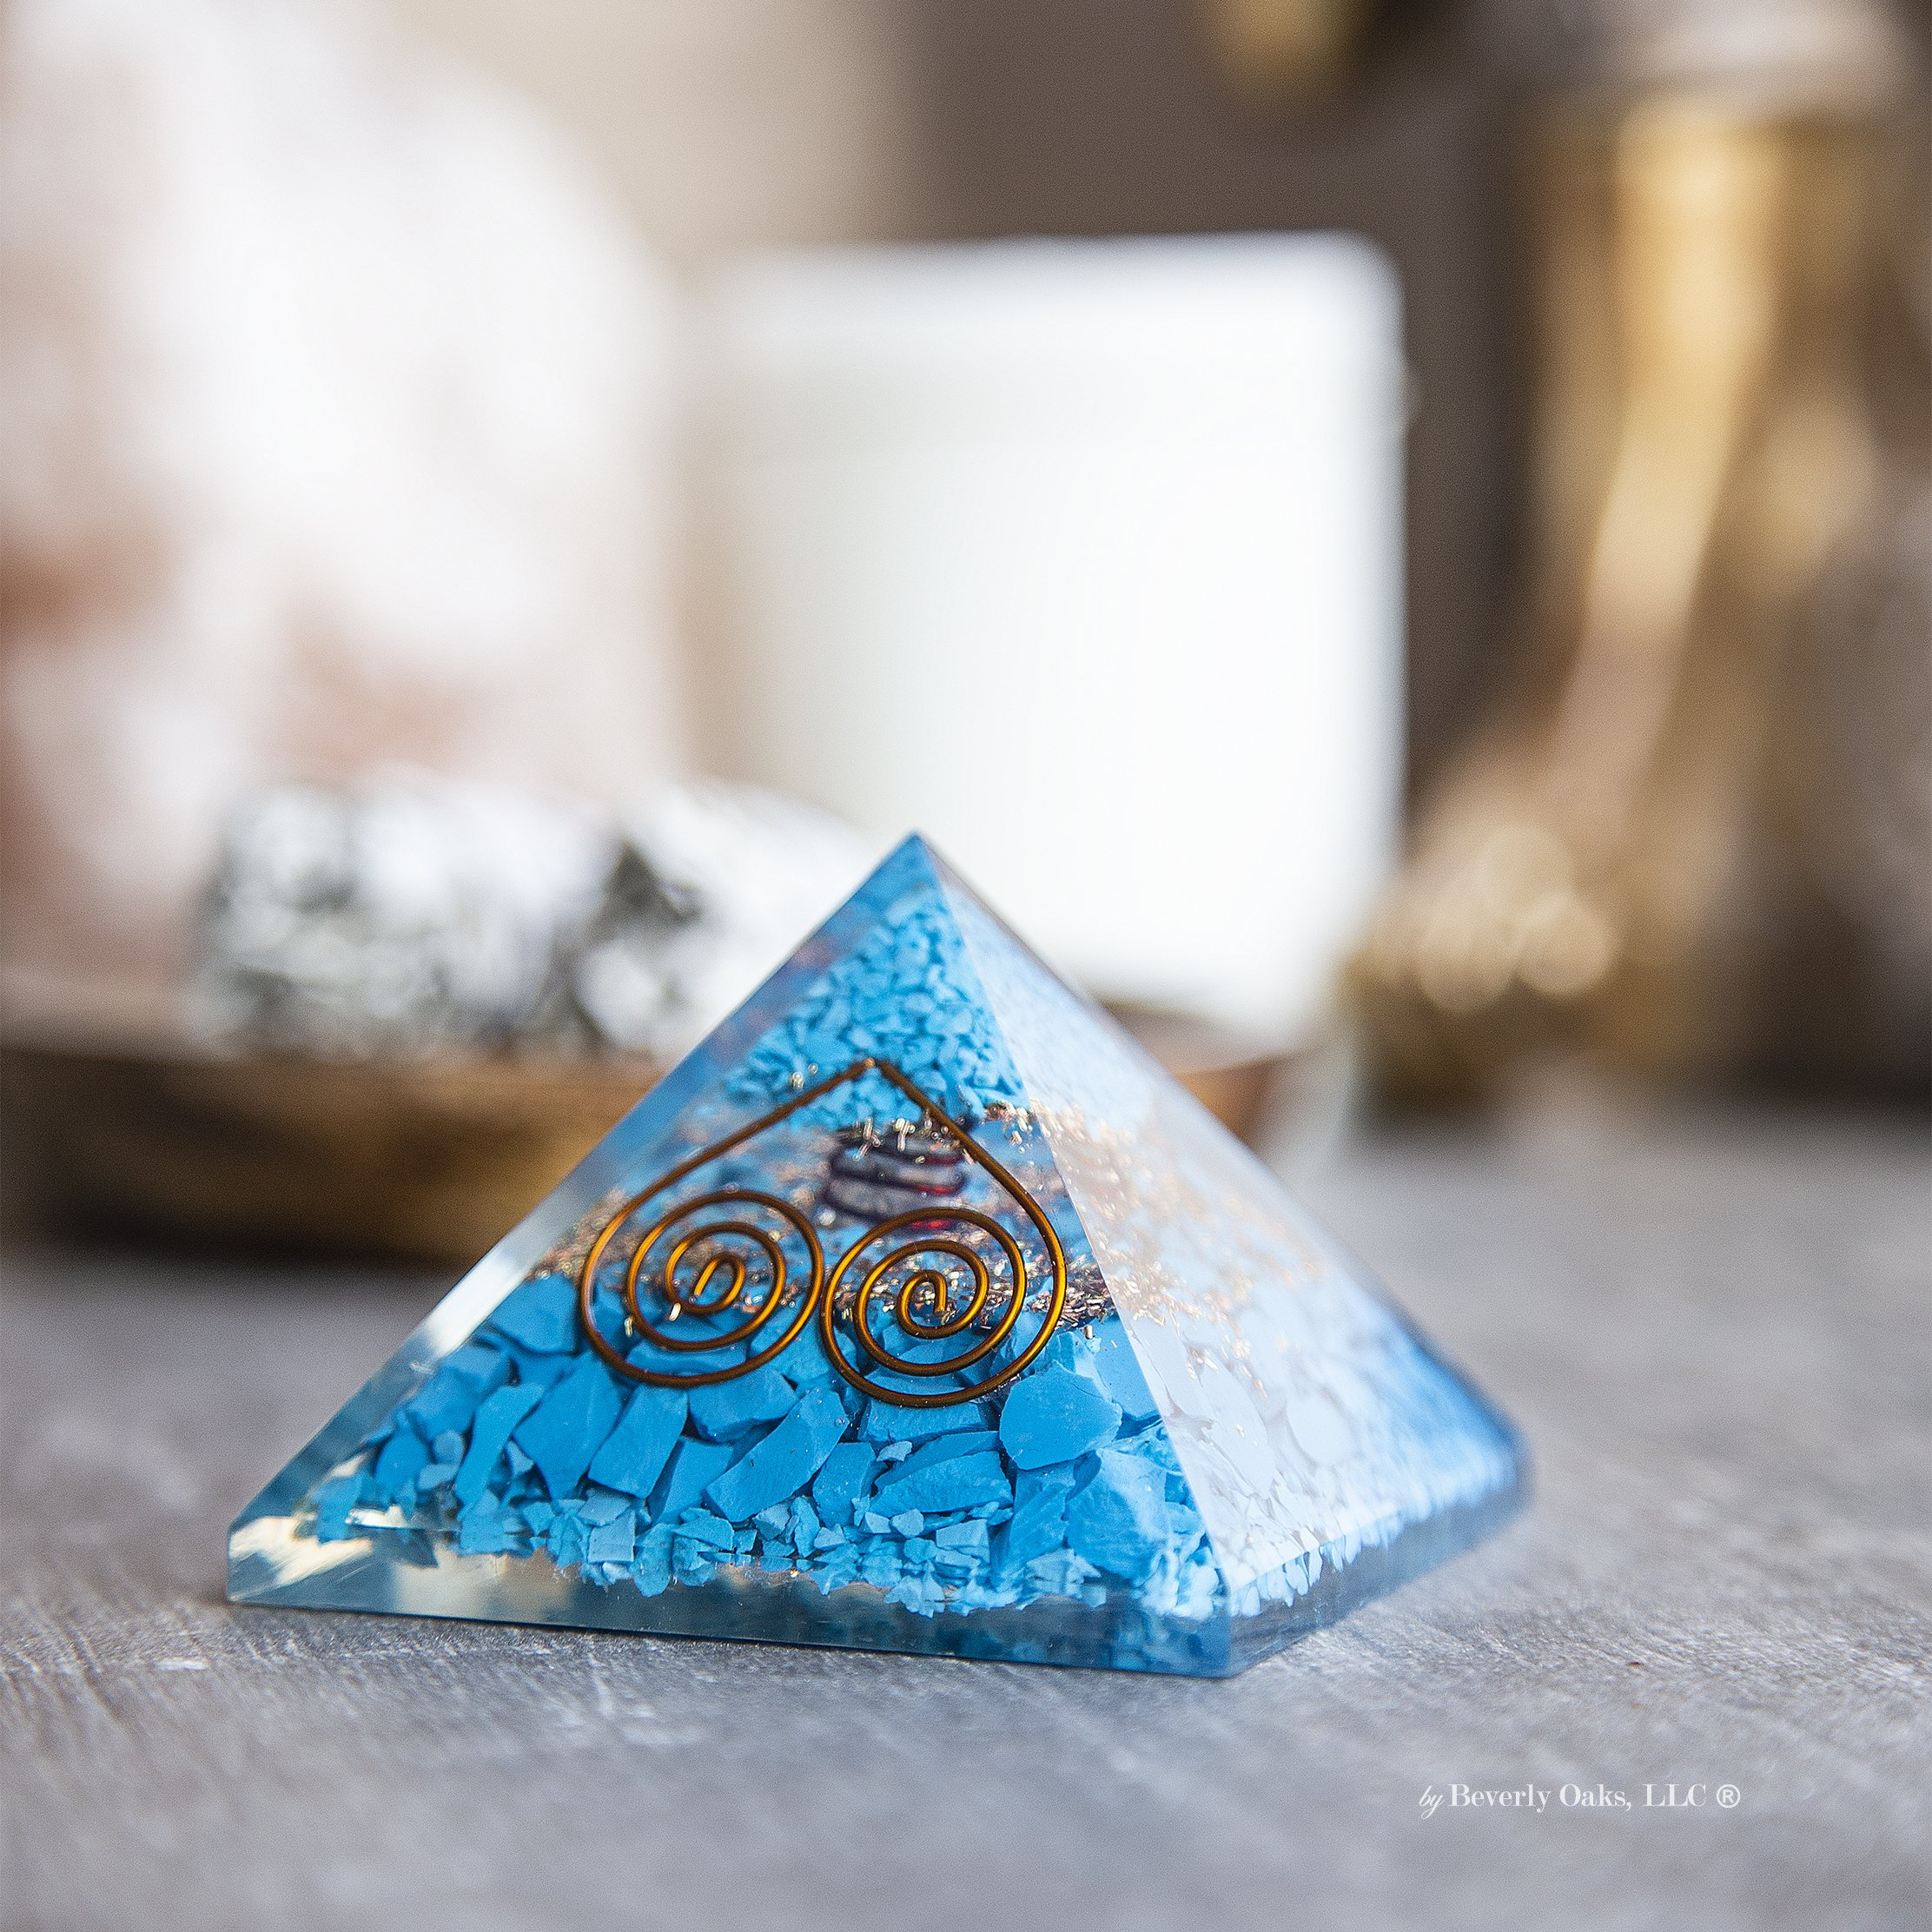 Charged Gemstone Orgone Pyramid – Certified Orgonite® Healing Crystals and Copper Turquoise Bio–Energy Enhancing Tool by Beverly Oaks